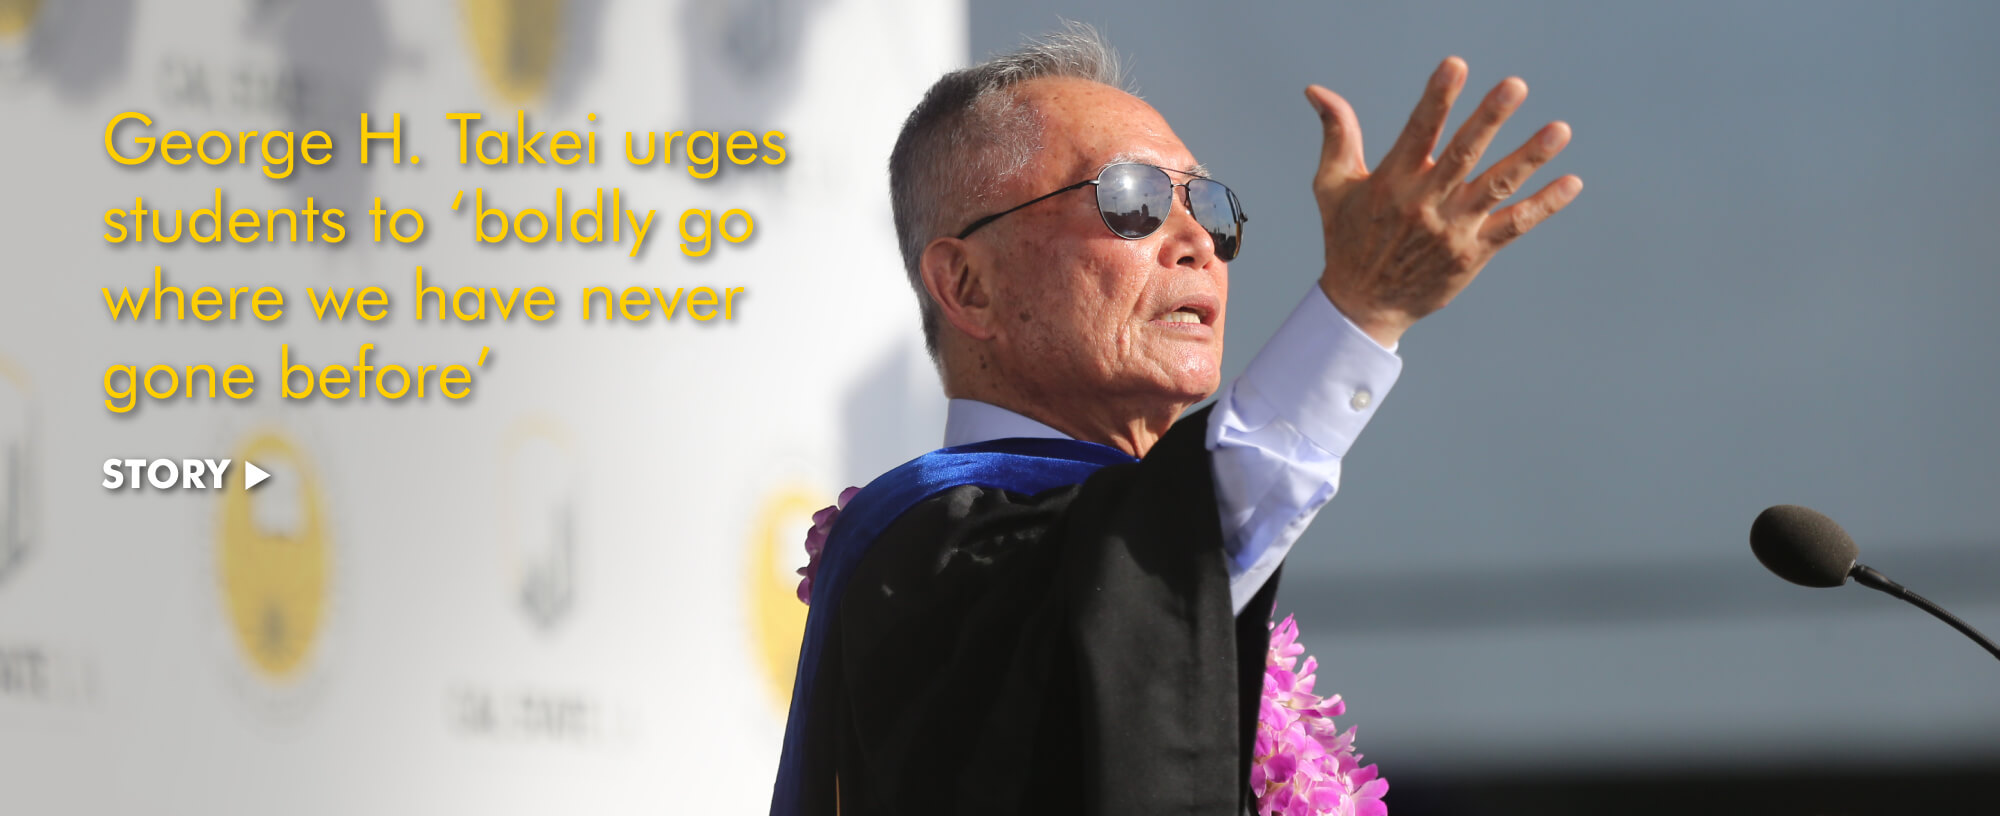 George H. Takei  urges students to 'boldly go where we have never gone before'